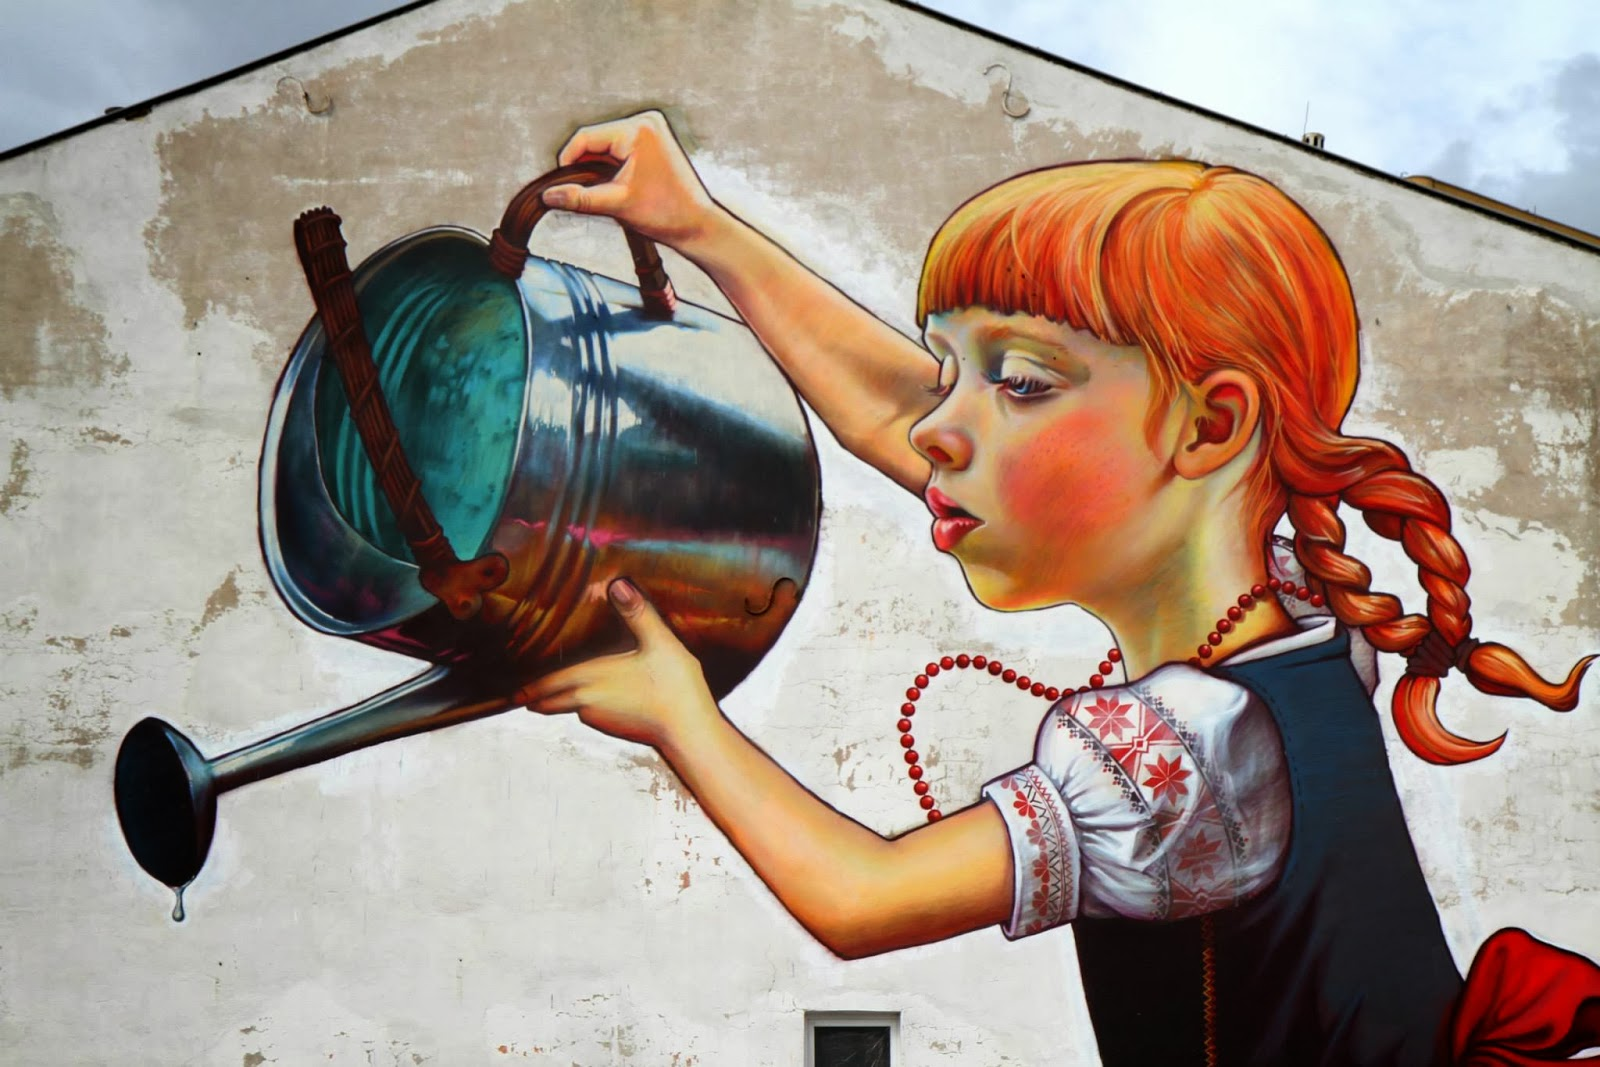 Natalia rak new mural for folk on the street bia ystok for Mural dziewczynka z konewka